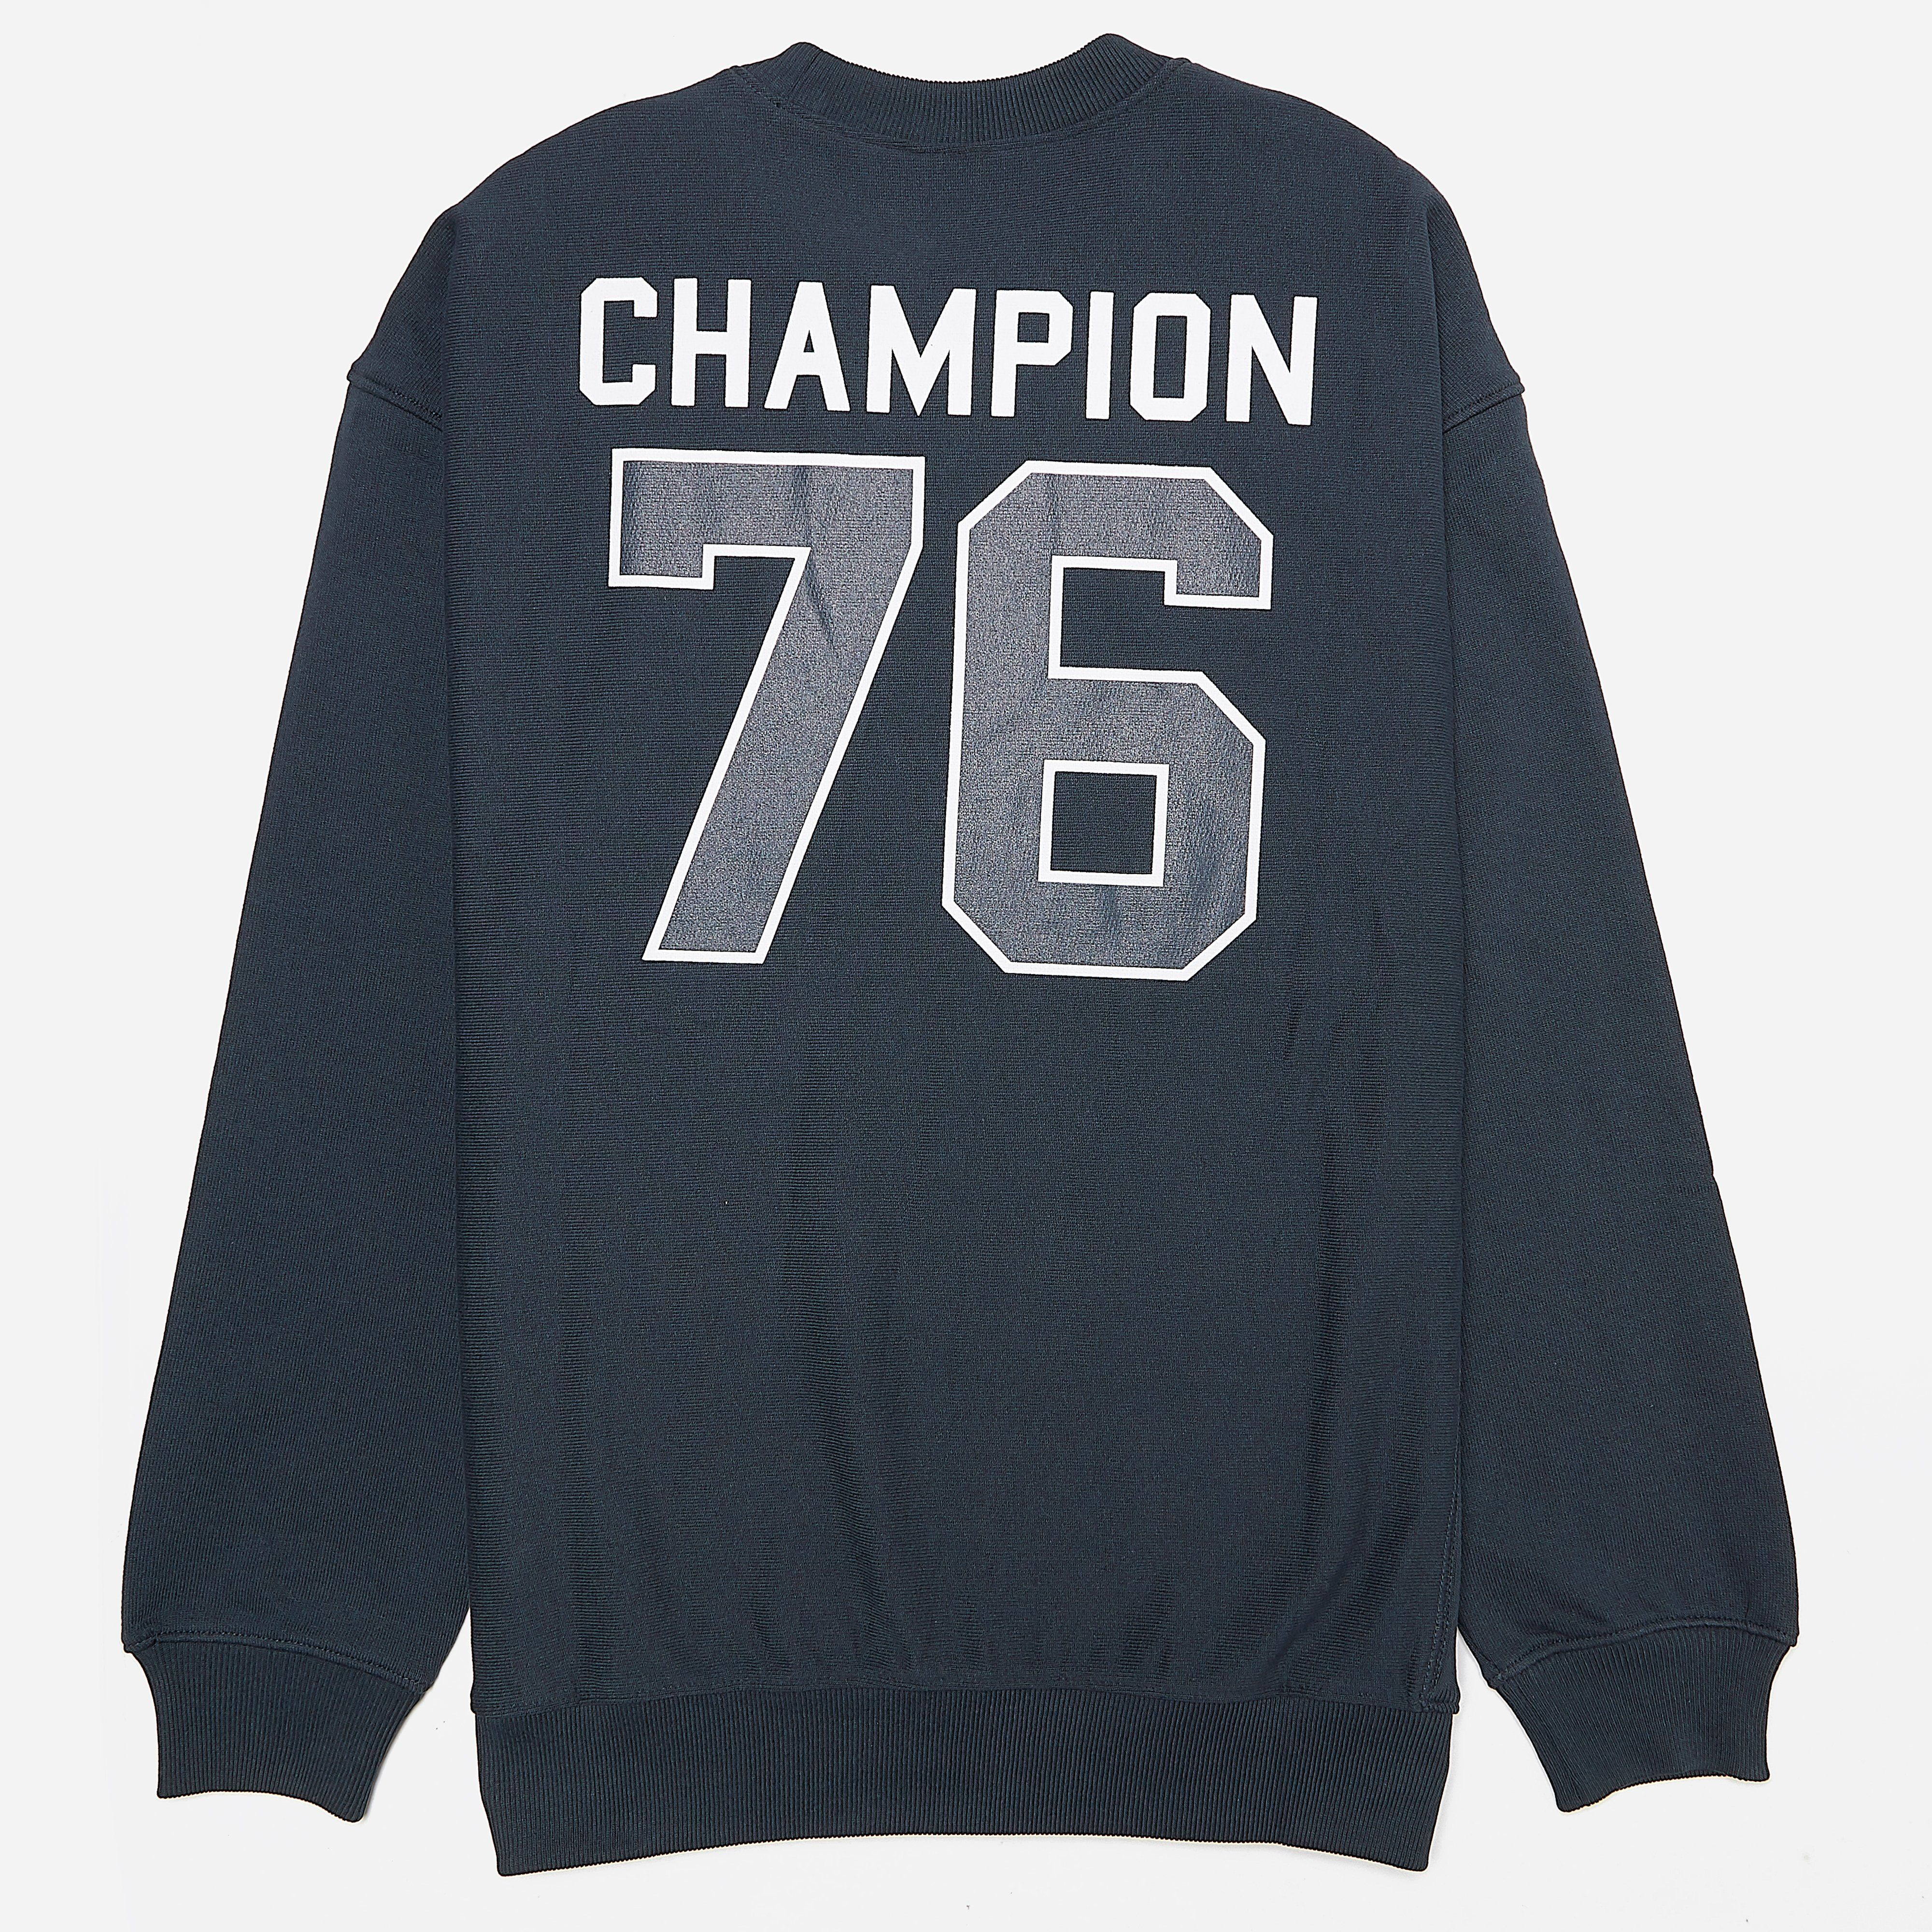 Champion x BEAMS Crewneck Sweatshirt